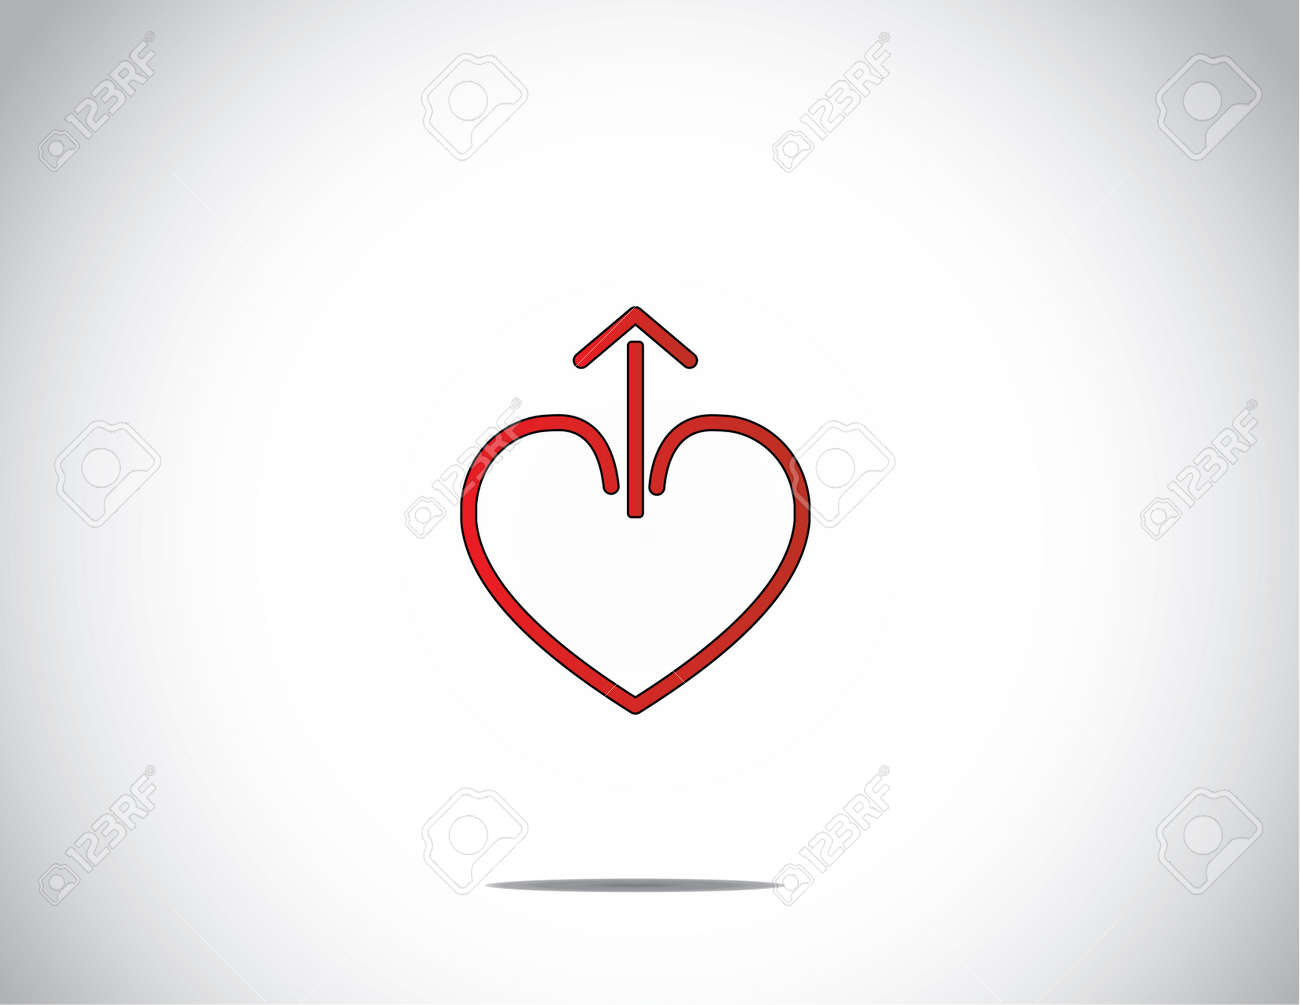 Simple Red Love Heart Shape With Up Arrow From The Middle With